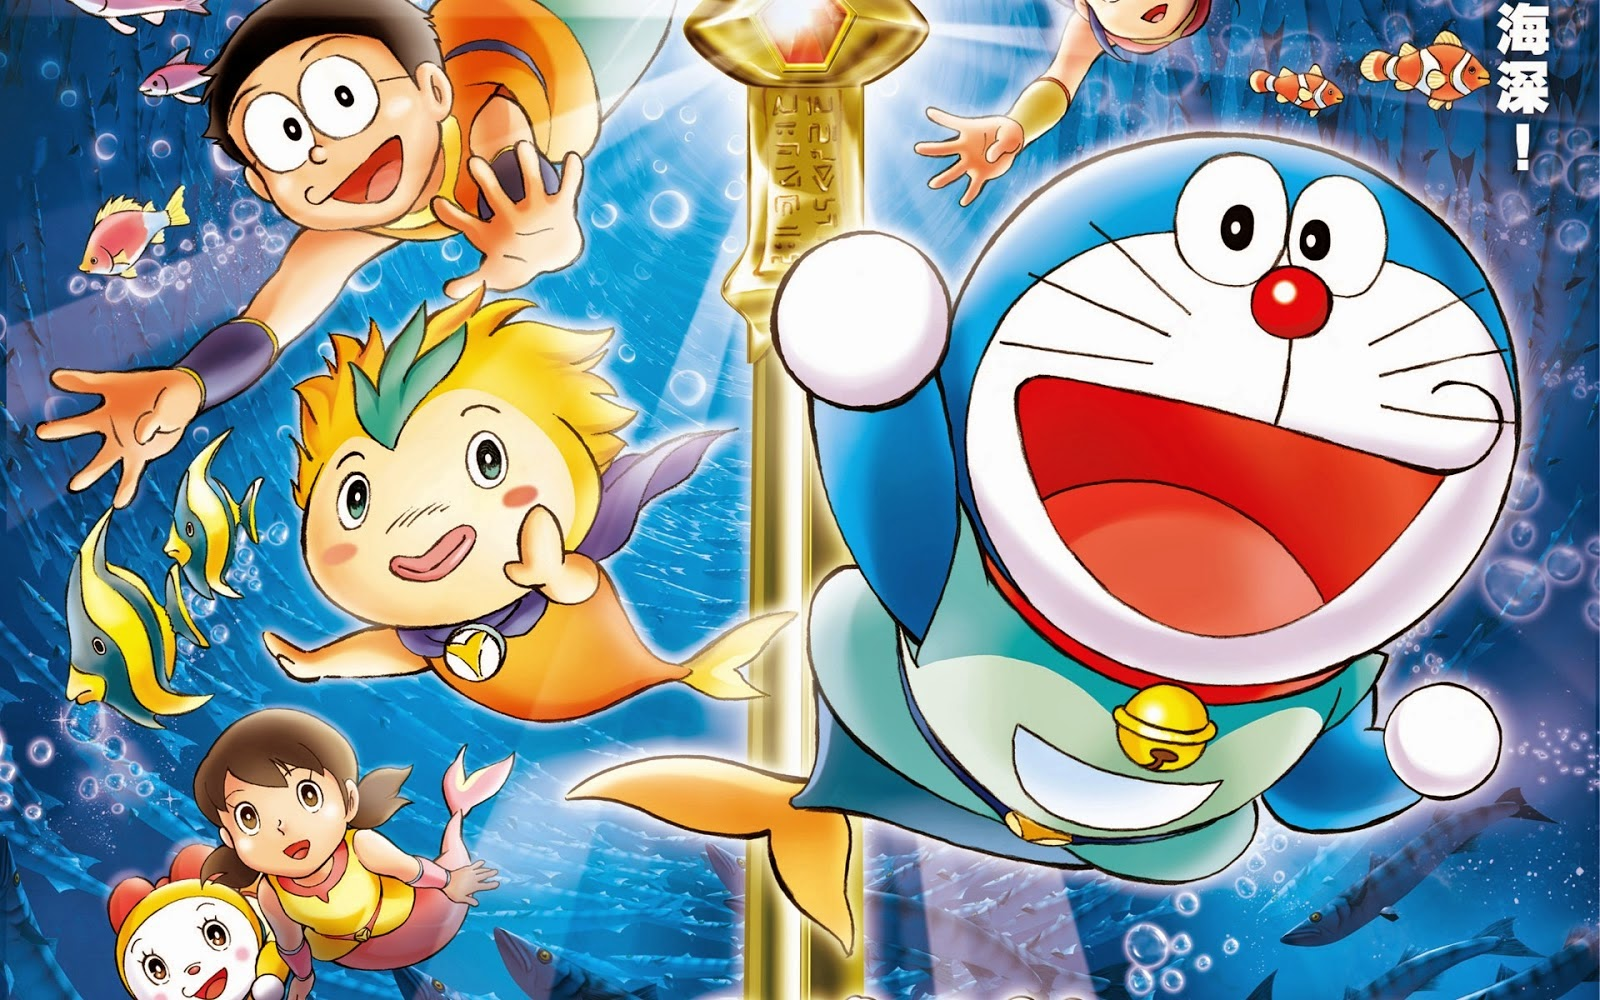 Cartoons Videos: Doraemon cartoon 3 GP download